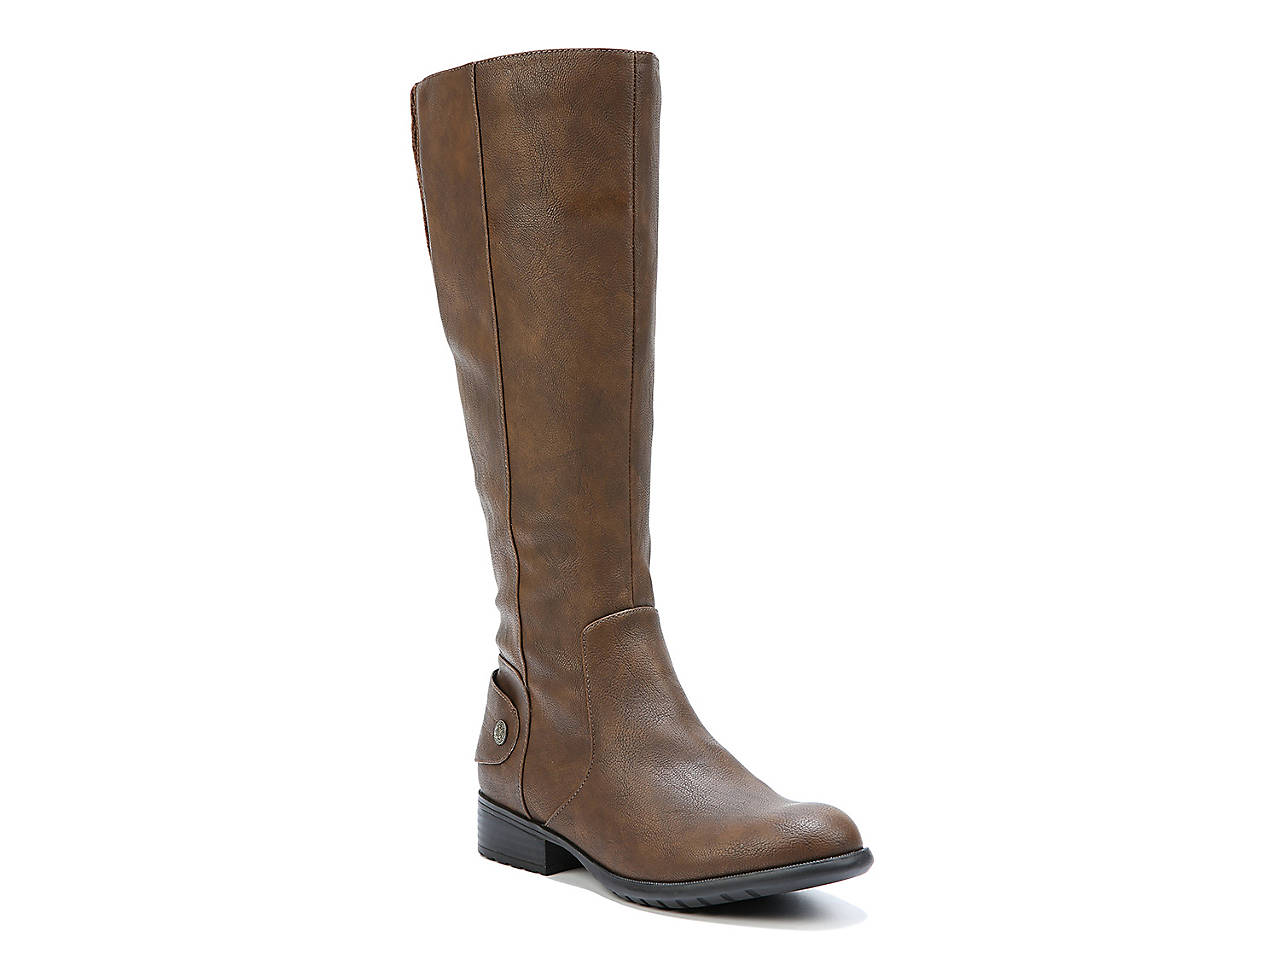 LifeStride Xandy Wide Calf Riding Boot Women s Shoes  675c86b360